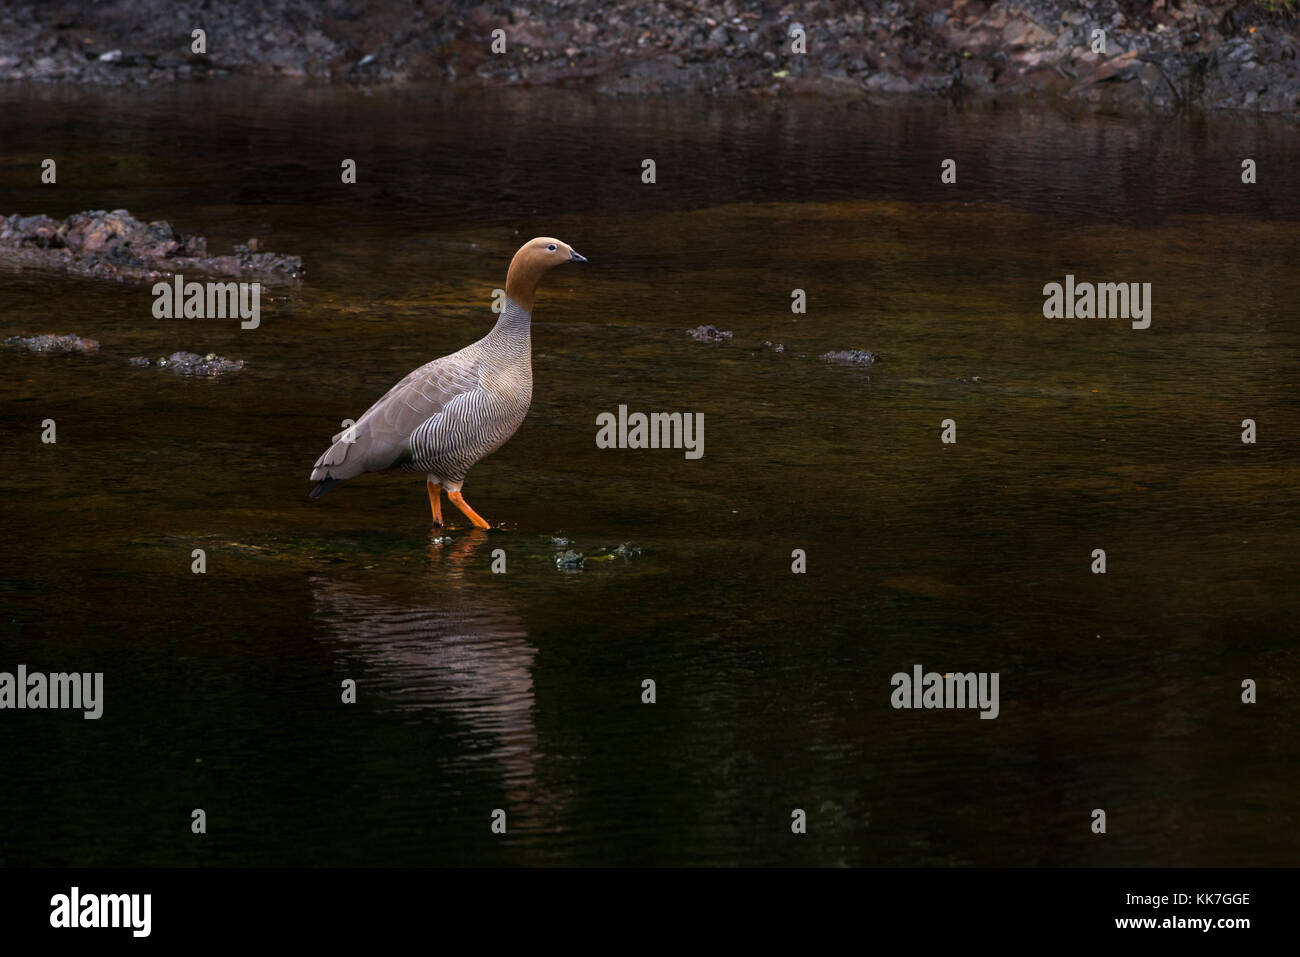 The highly endangered Ruddy-headed Goose (Chloephaga rubidiceps) from near Punta Arenas, Chile - Stock Image